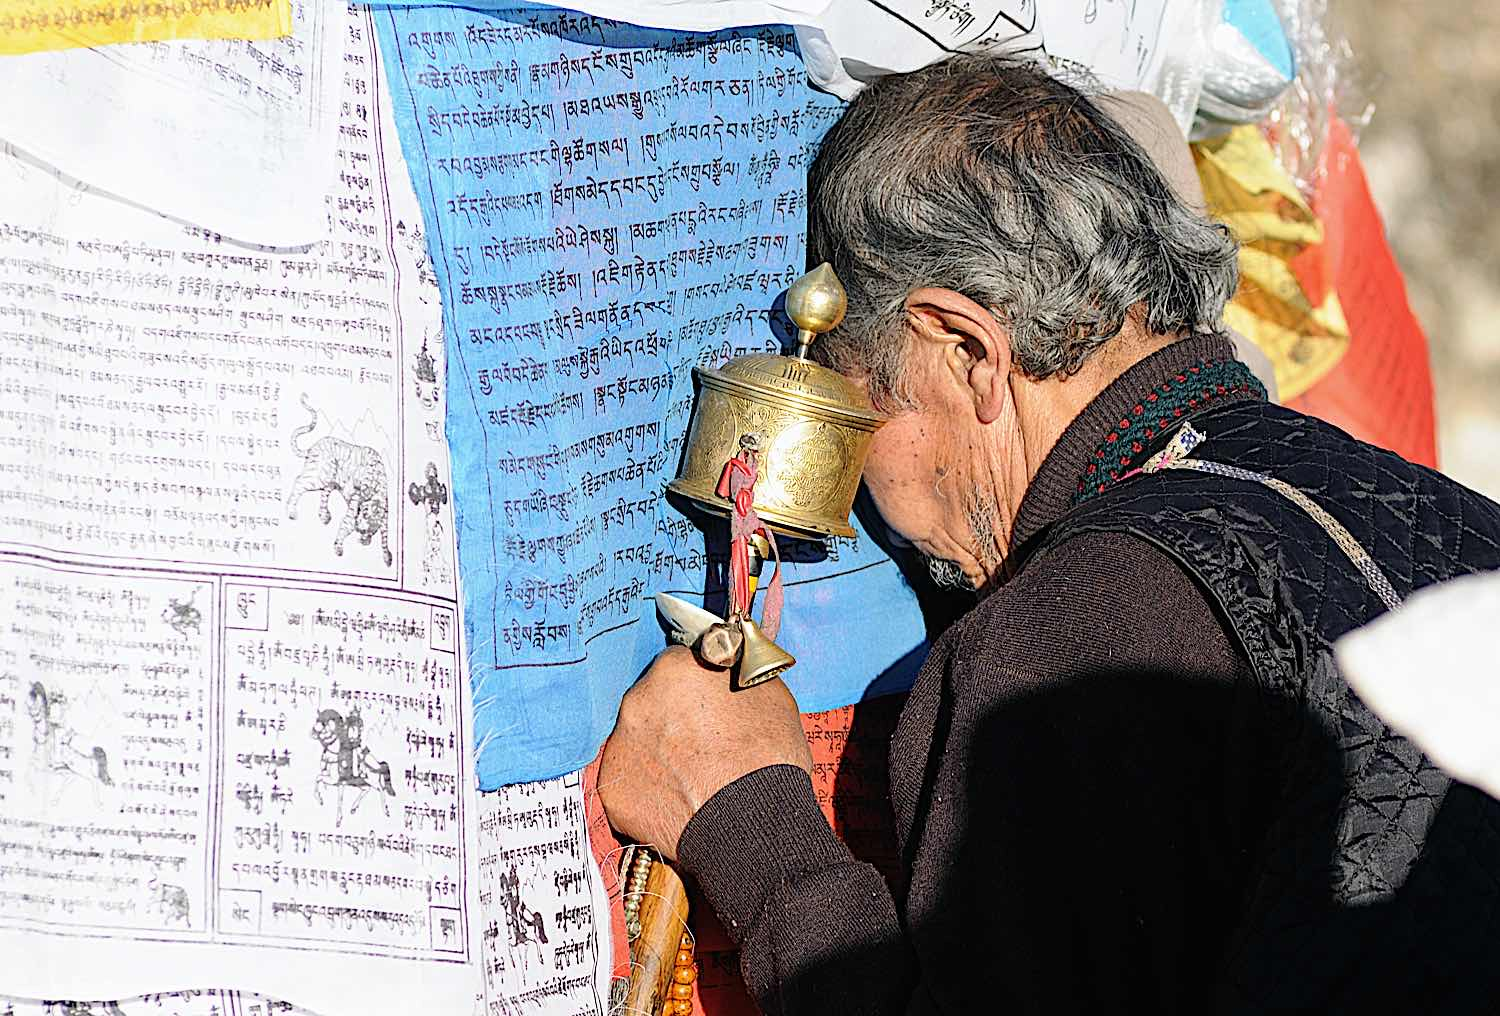 Buddha Weekly Prayer Wheel Practice and Prostration at a Temple Tibet Buddhism